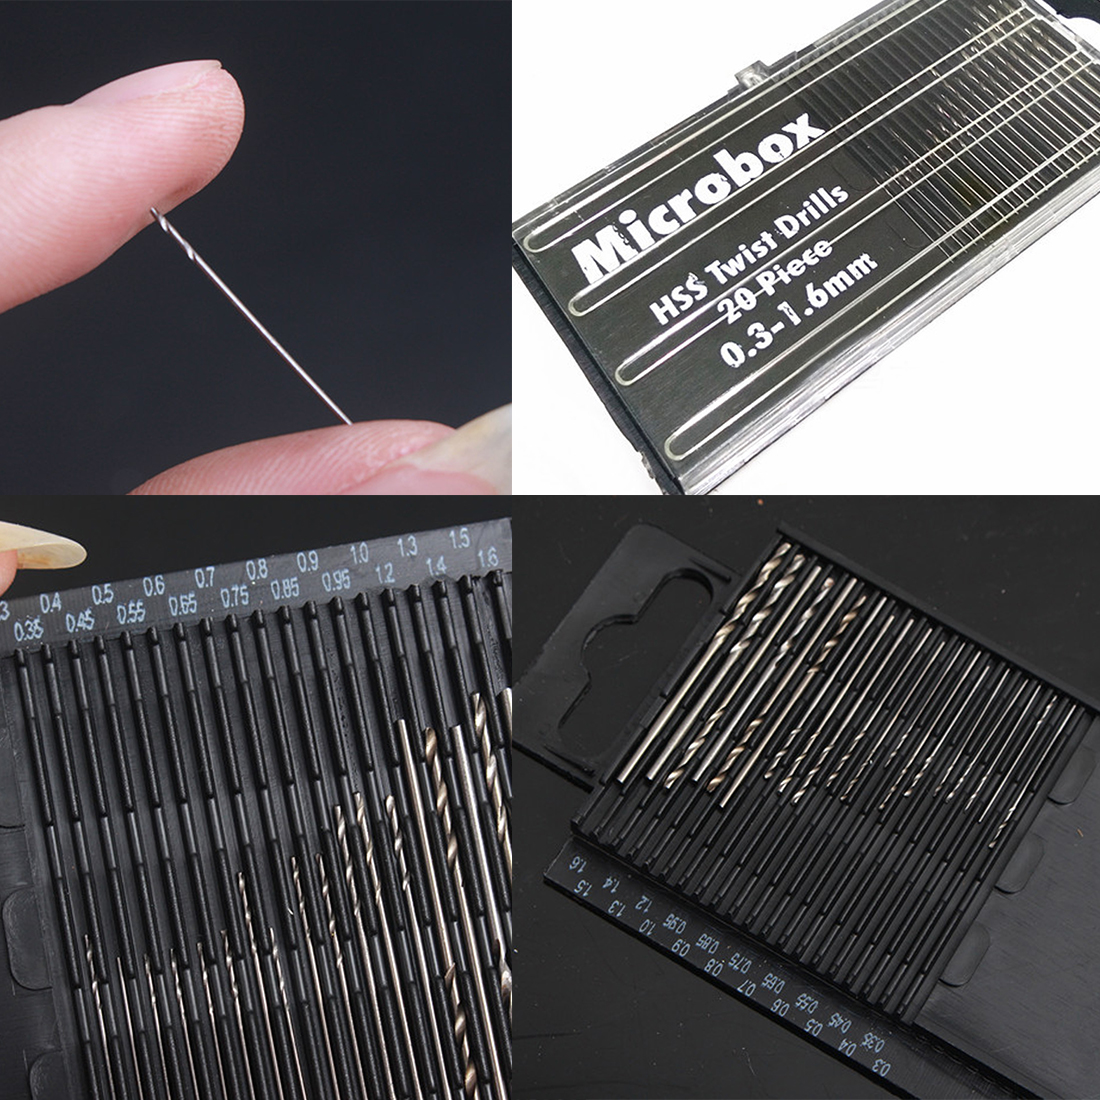 20Pcs Mini Drill Bit Set HSS Micro Twist Drill Bit Set 0.3mm-1.6mm Model Craft With Case Repair Tools Tiny Micro Twist Drill Bit цена